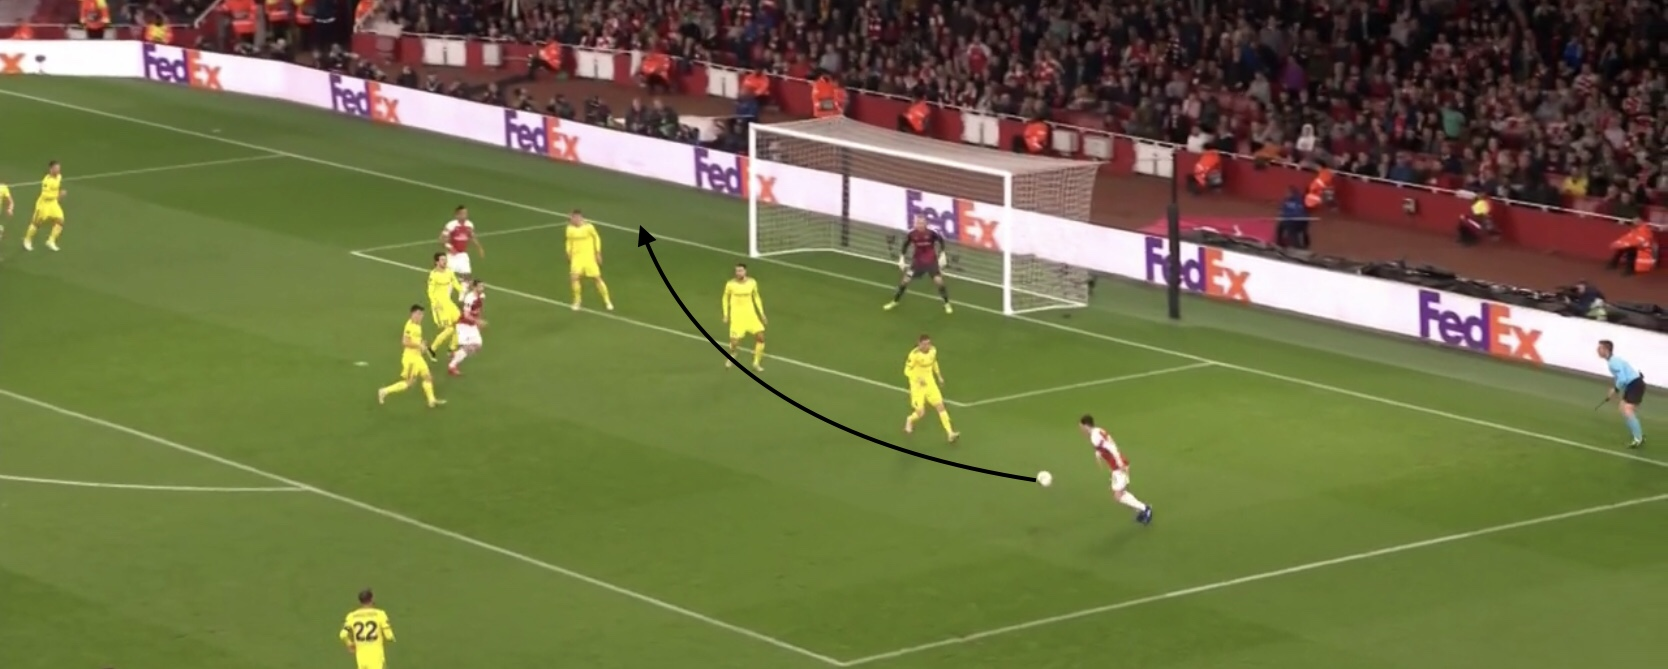 In this photo, Ozil has made a run to the back post and received a cross from the opposite side of the field. He adjust his body to face the goal and chest with his first touch then clips a cross to the back post with his second touch, again playing a forward penetrating pass.